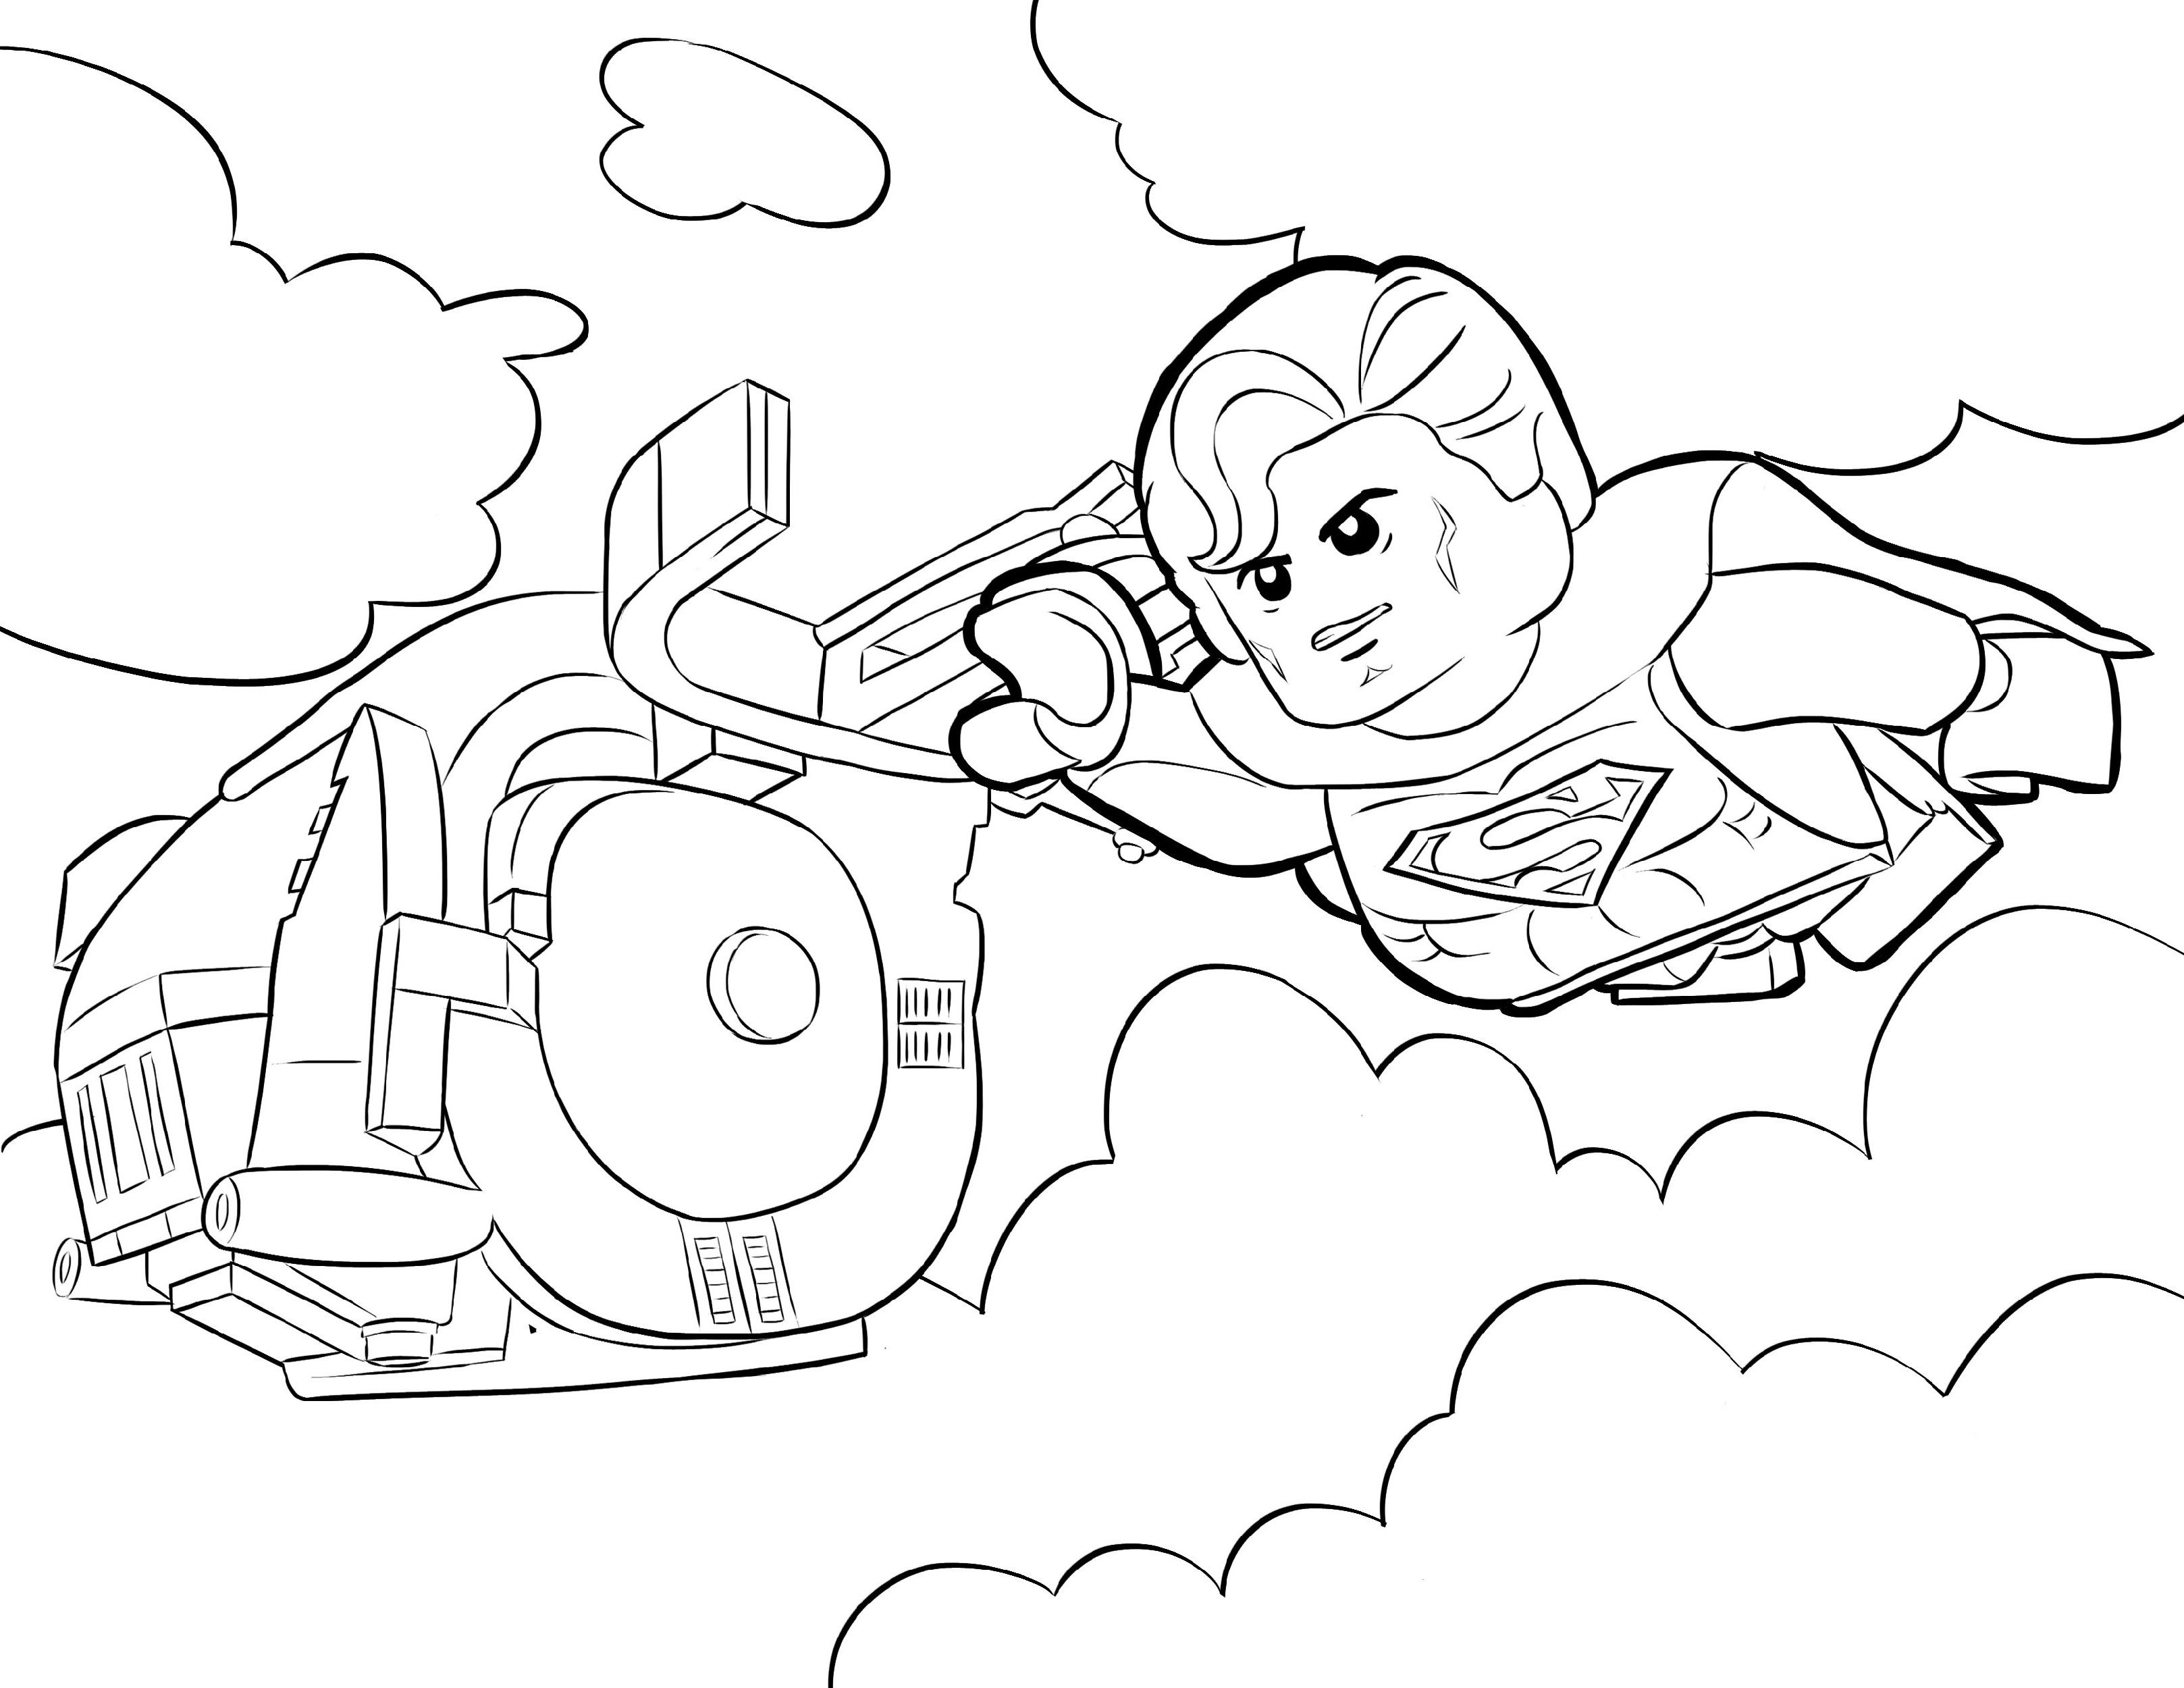 Lego Superman Coloring Pages Lego Movie Coloring Pages Superman